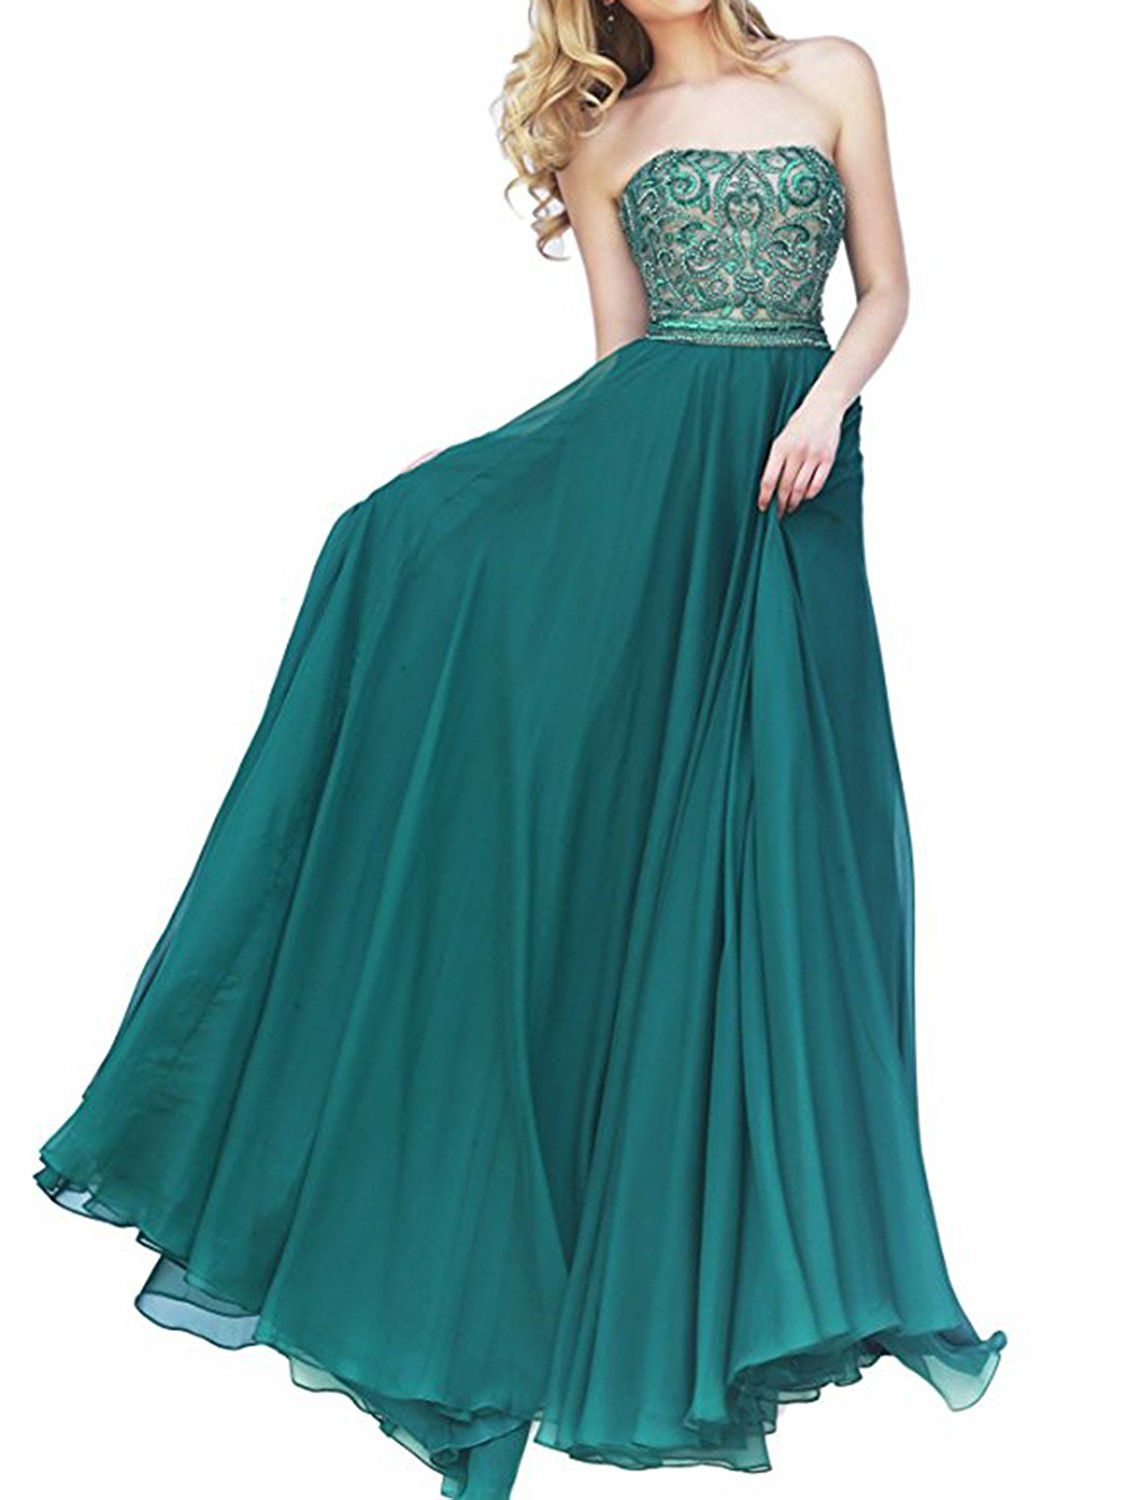 Hatail Strapless Beaded Prom Dress Long A Line Evening Gown for ...